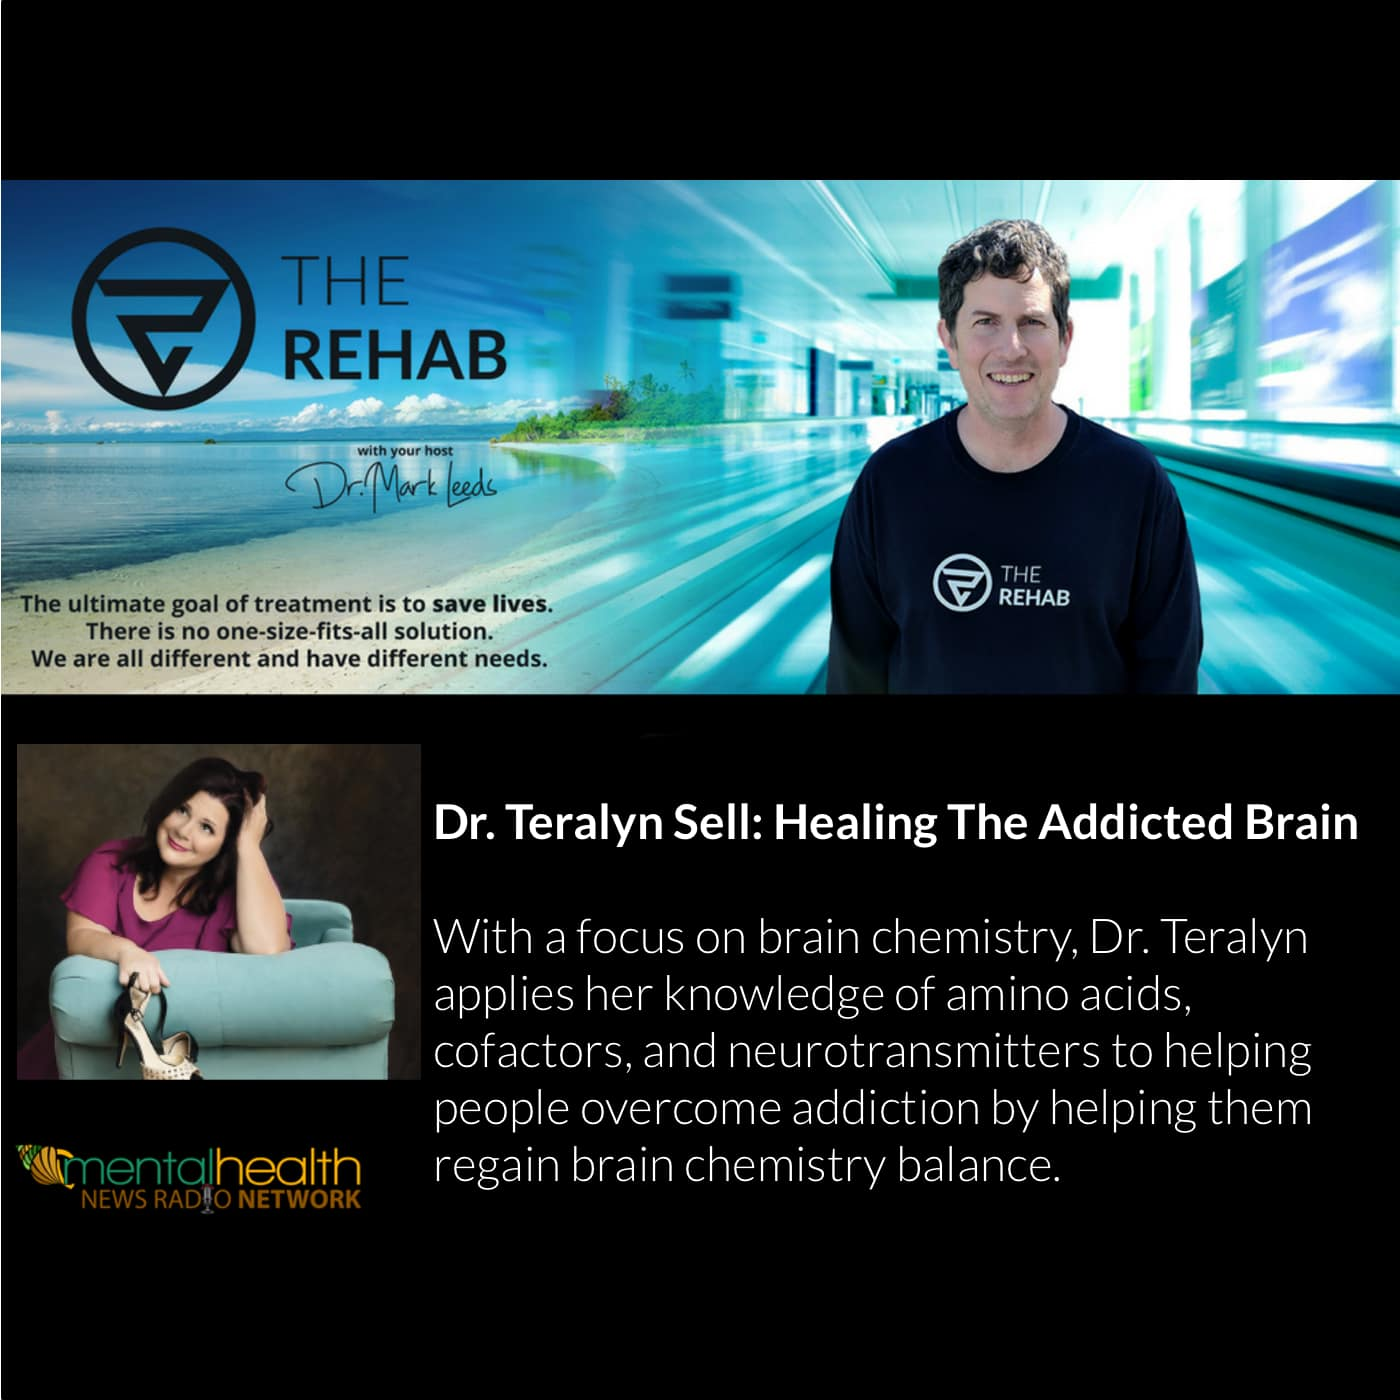 Dr. Teralyn Sell, Brain Chemistry Expert: Healing The Addicted Brain